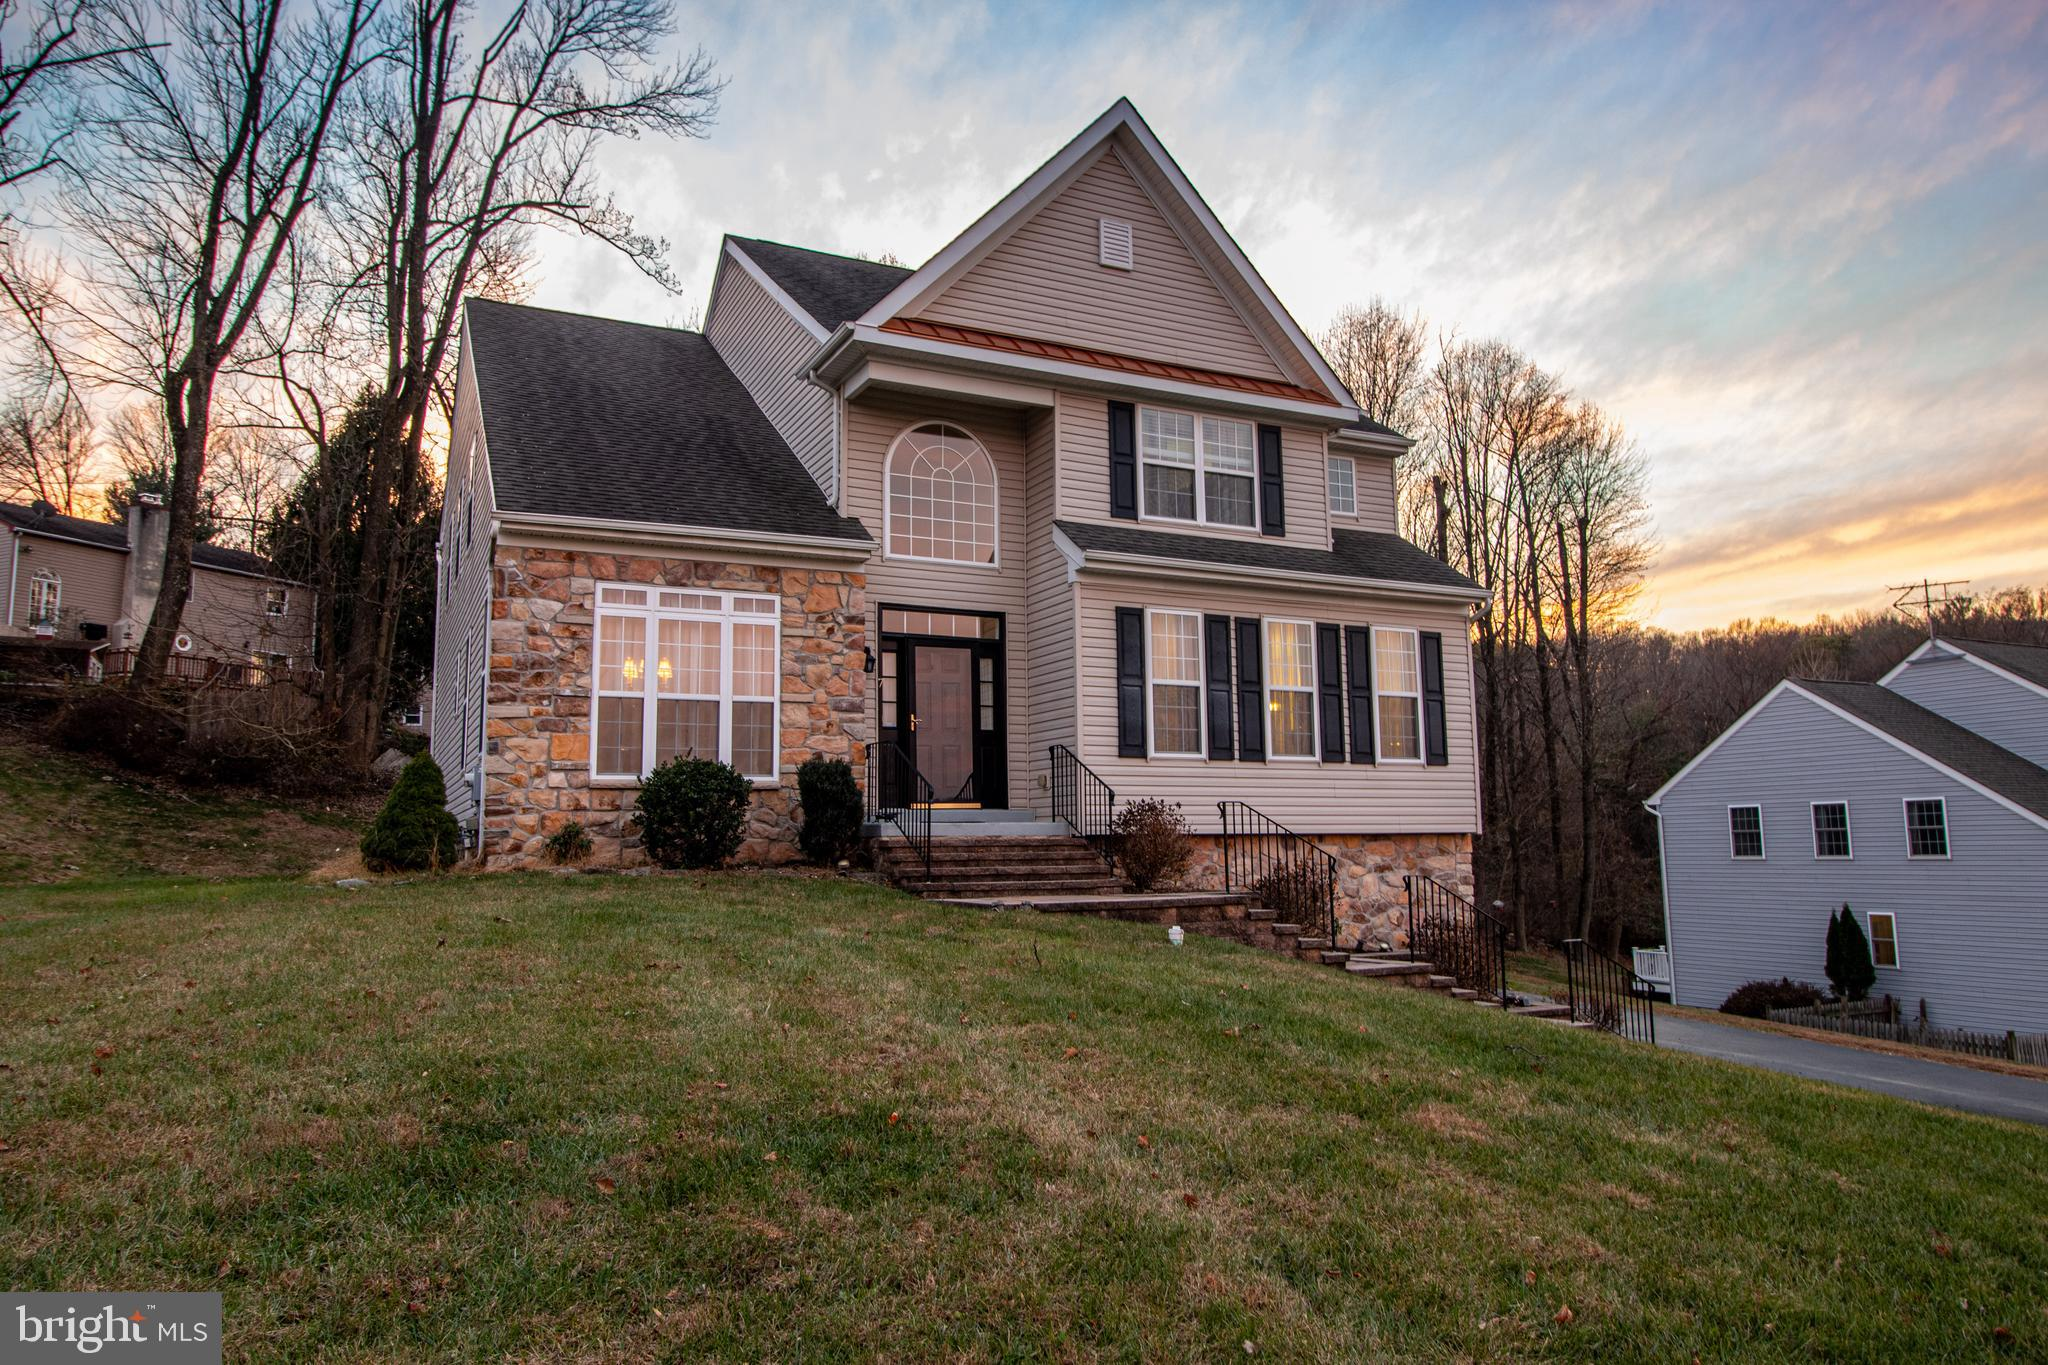 7 MILLRIDGE DRIVE, ASTON, PA 19014